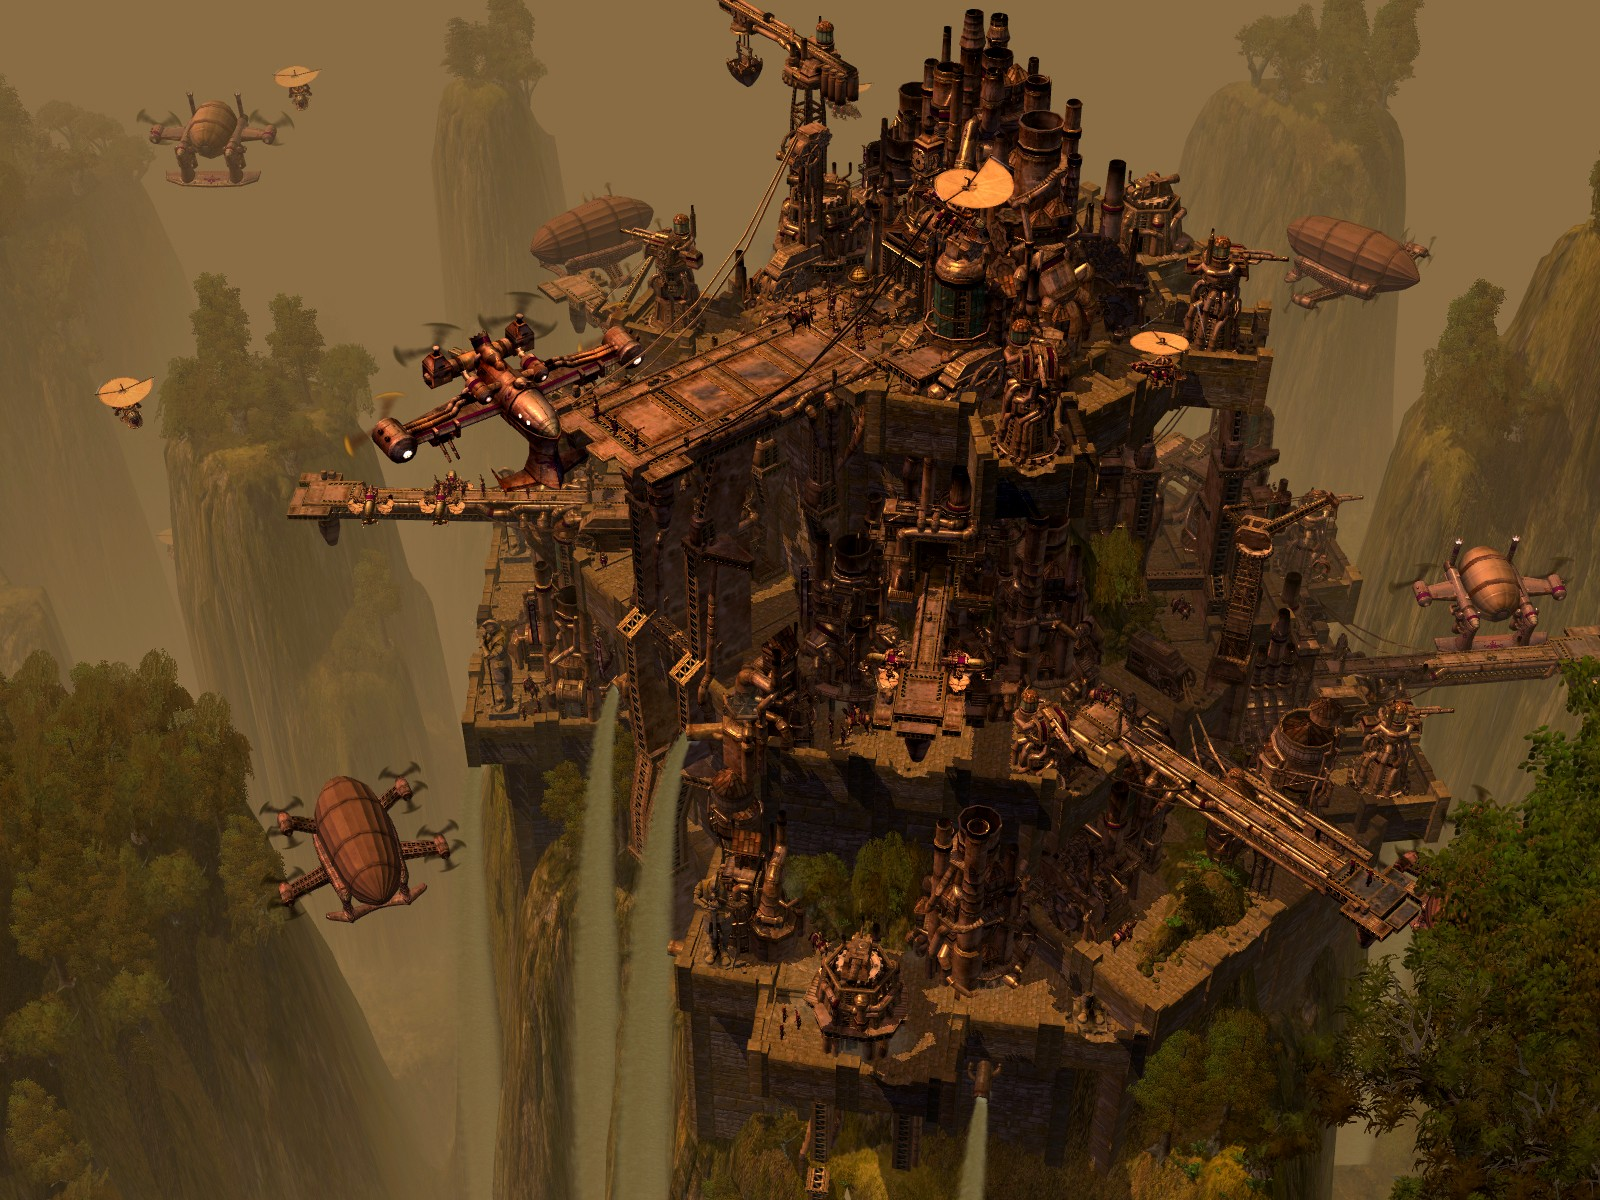 1000 images about steampunk on pinterest steam punk